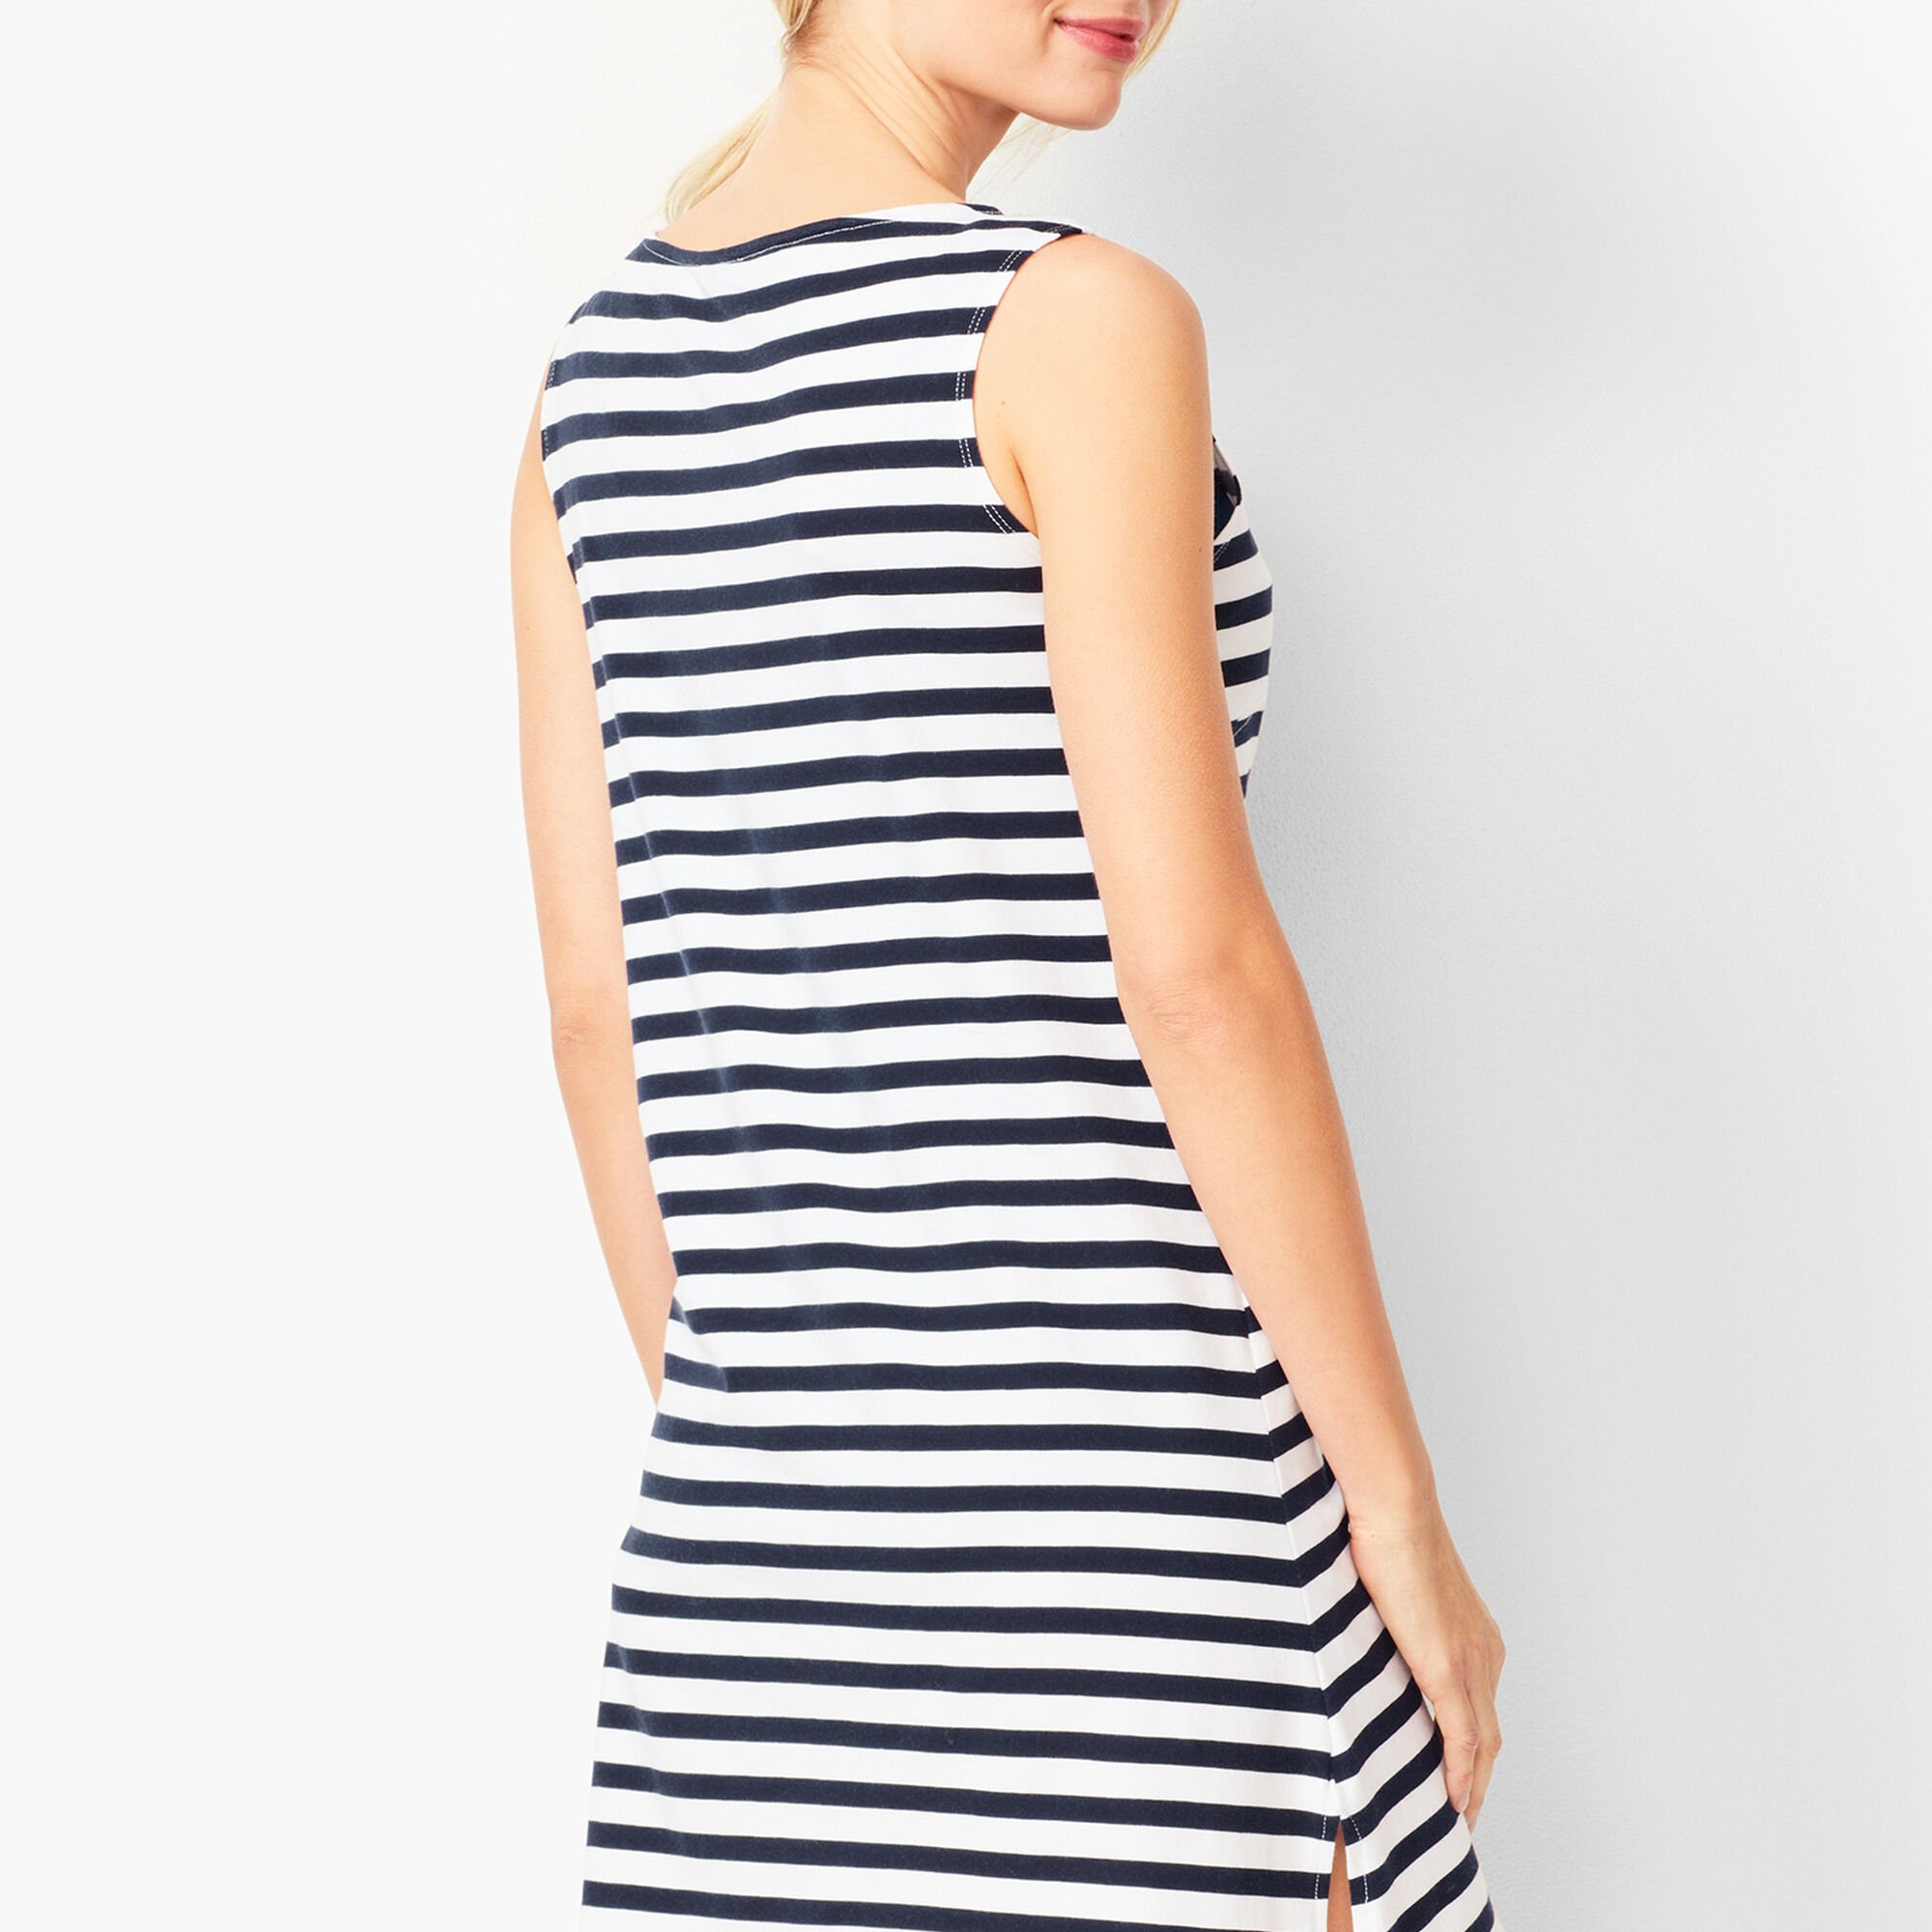 8811daef193c5 Stripe Beach Cover-Up Opens a New Window.